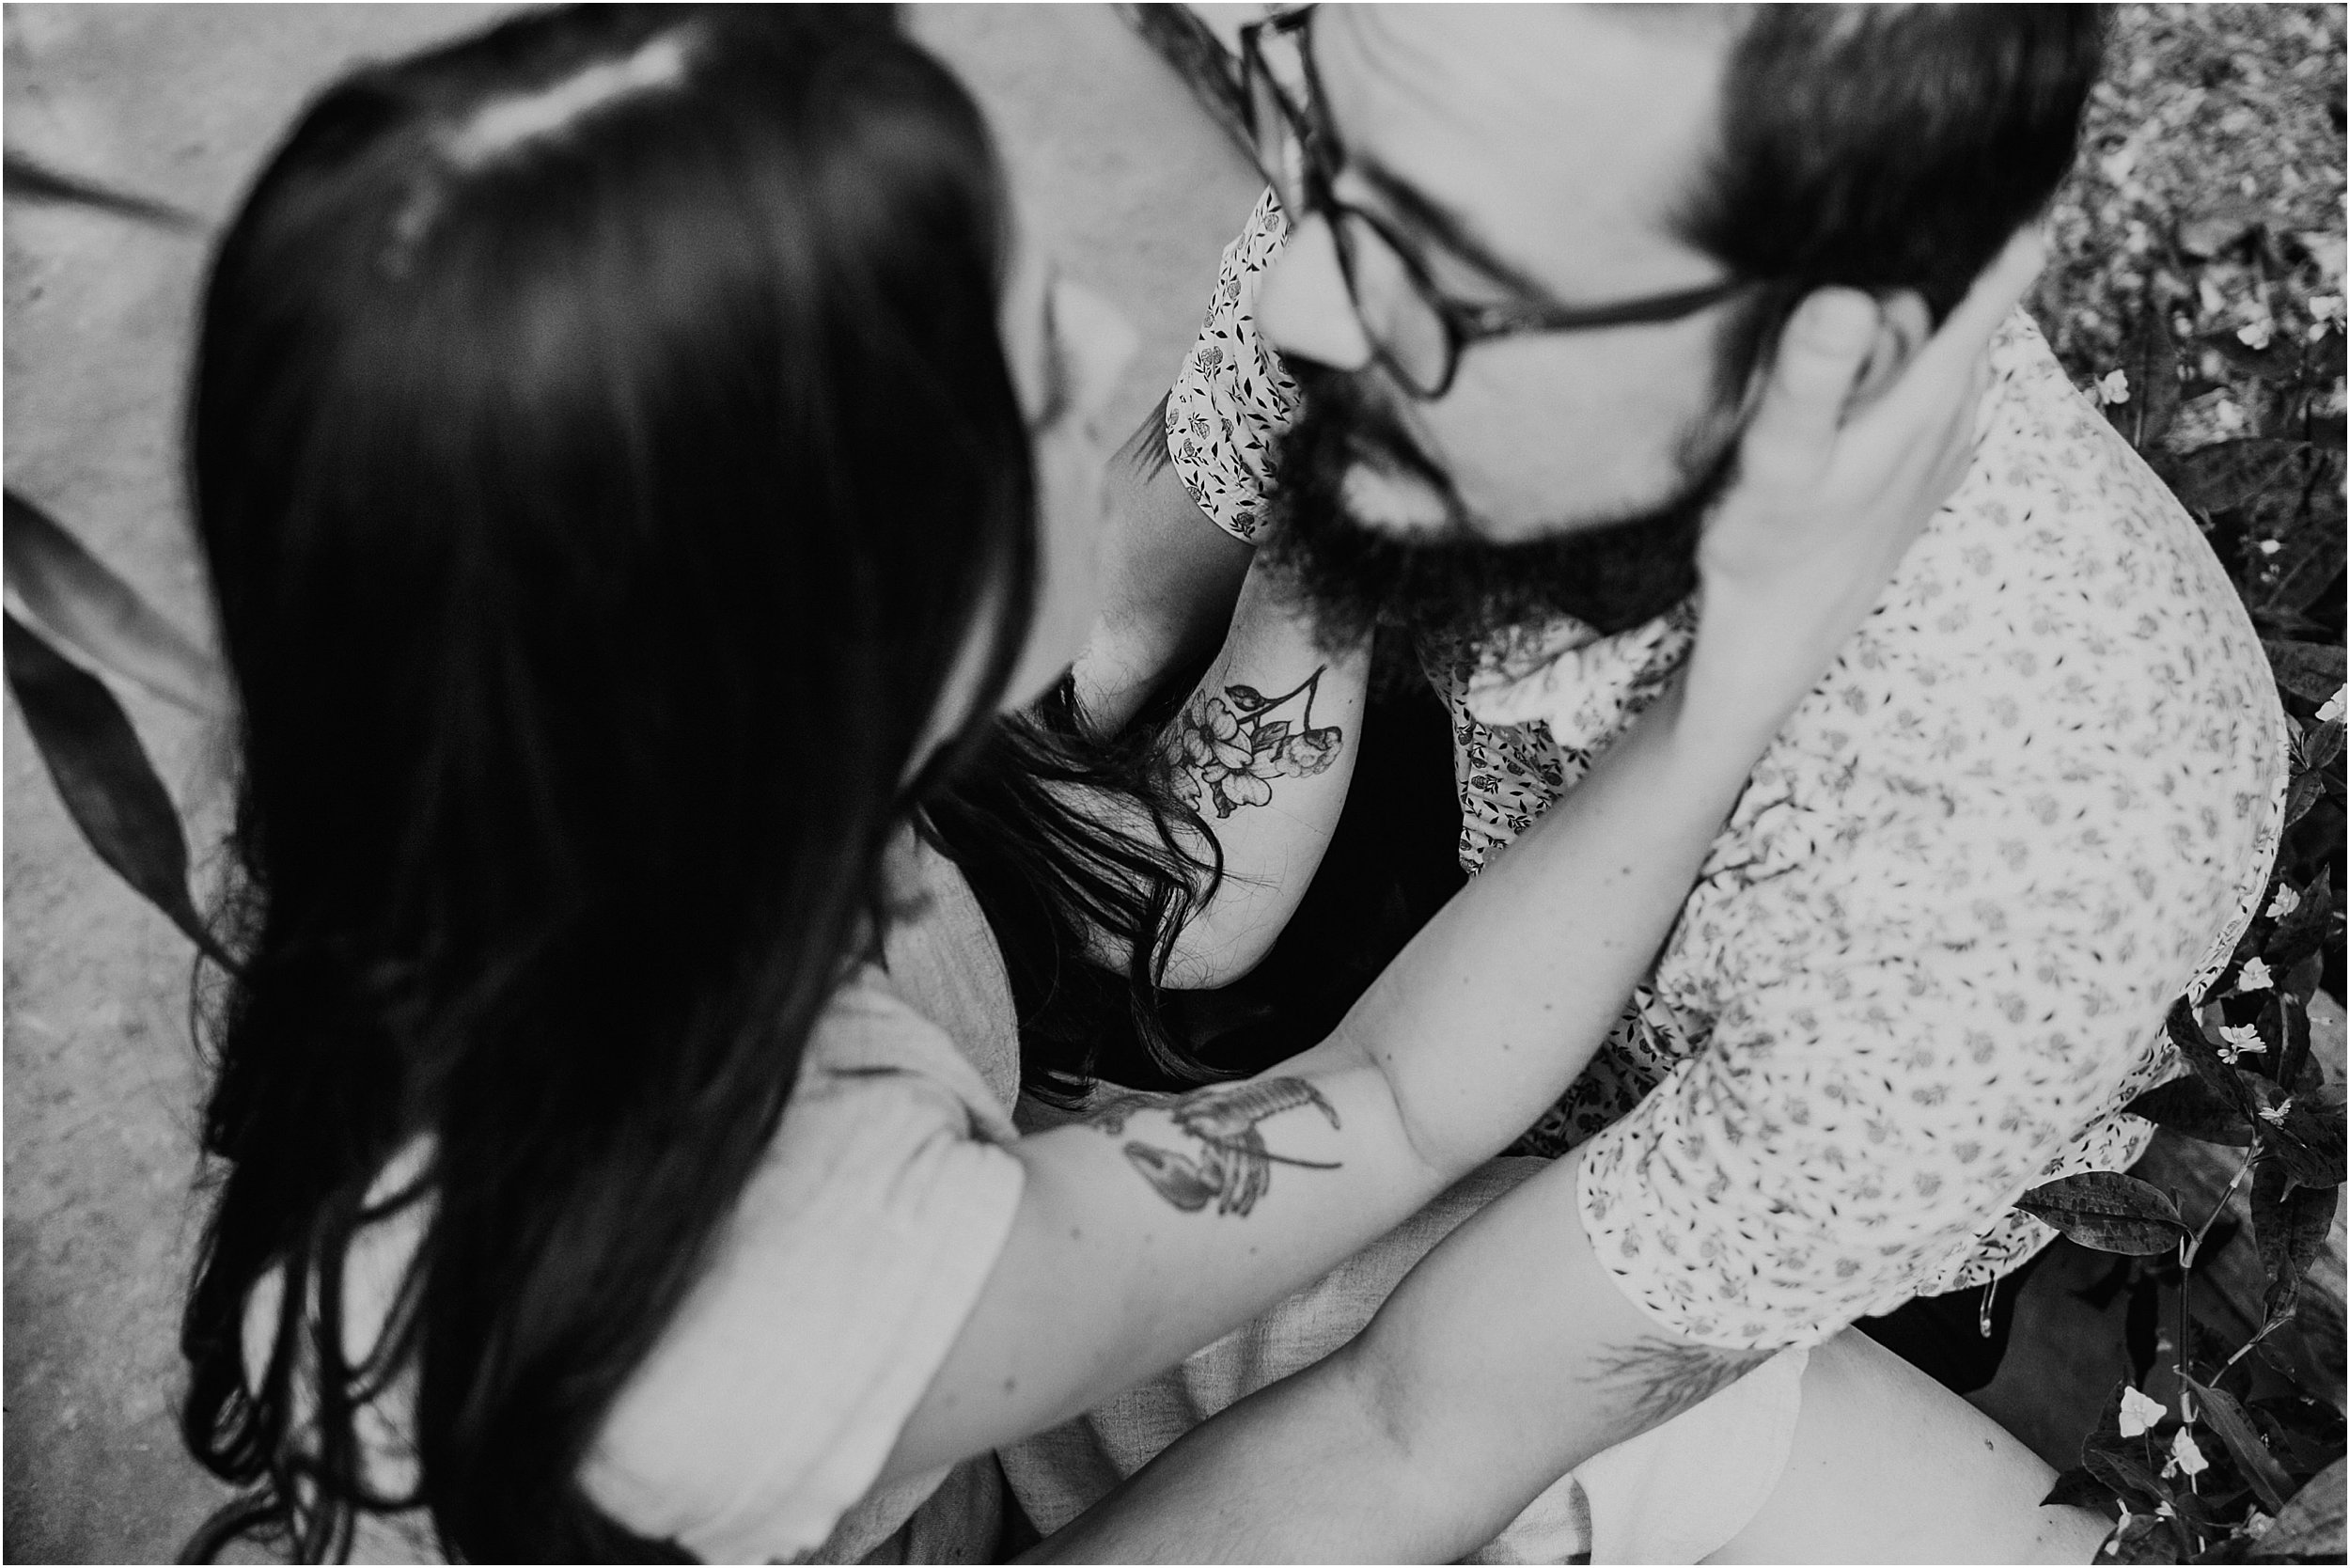 A couple is sitting on the ground, facing each other . The girls hand is on his cheek and they have tattoos on their arms. The image is black and white.